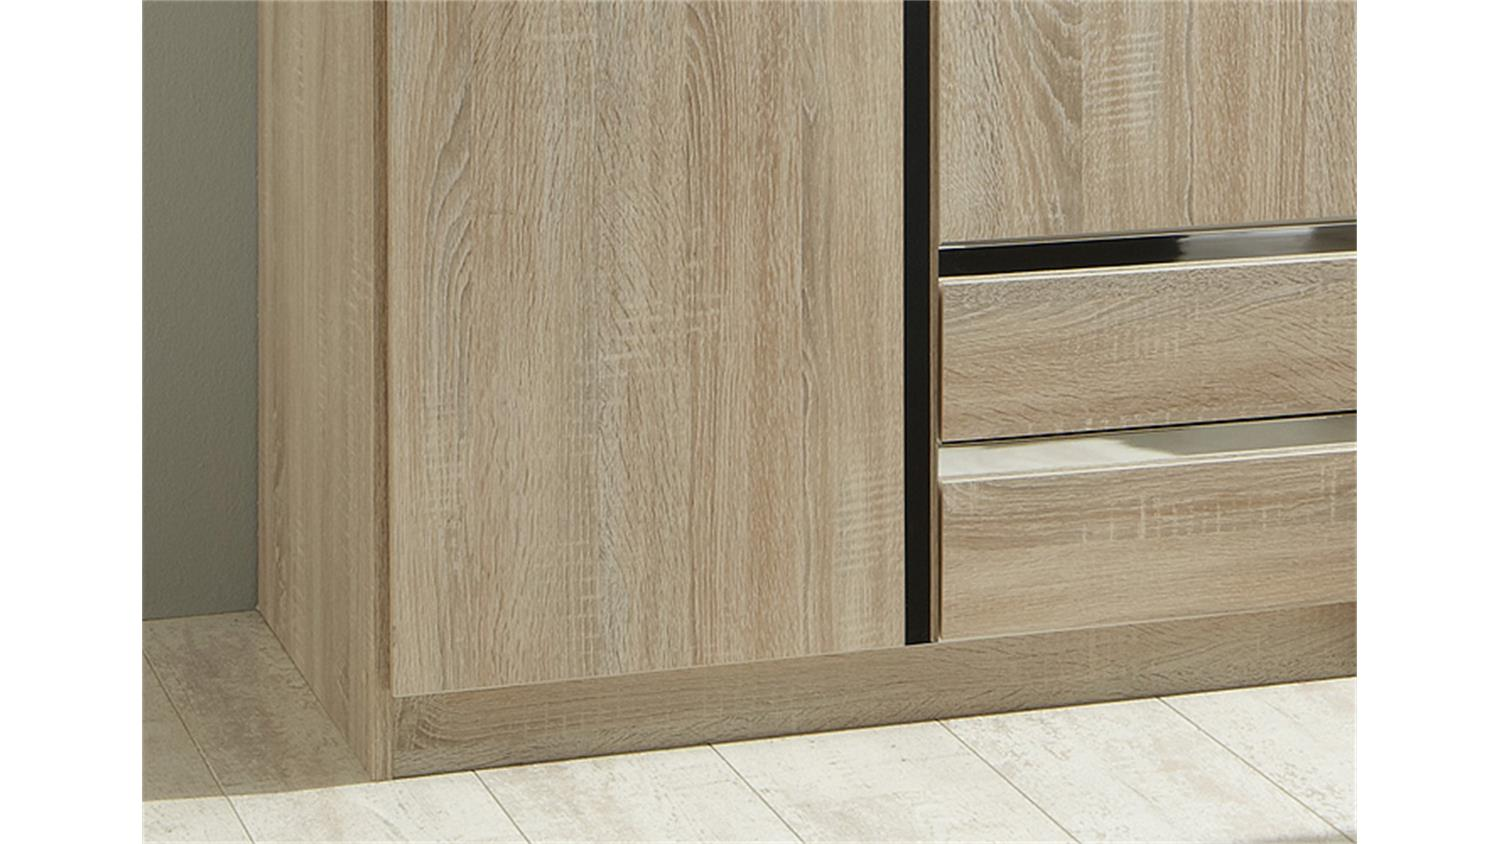 kleiderschrank line sonoma eiche s gerau und chrom 90 cm. Black Bedroom Furniture Sets. Home Design Ideas